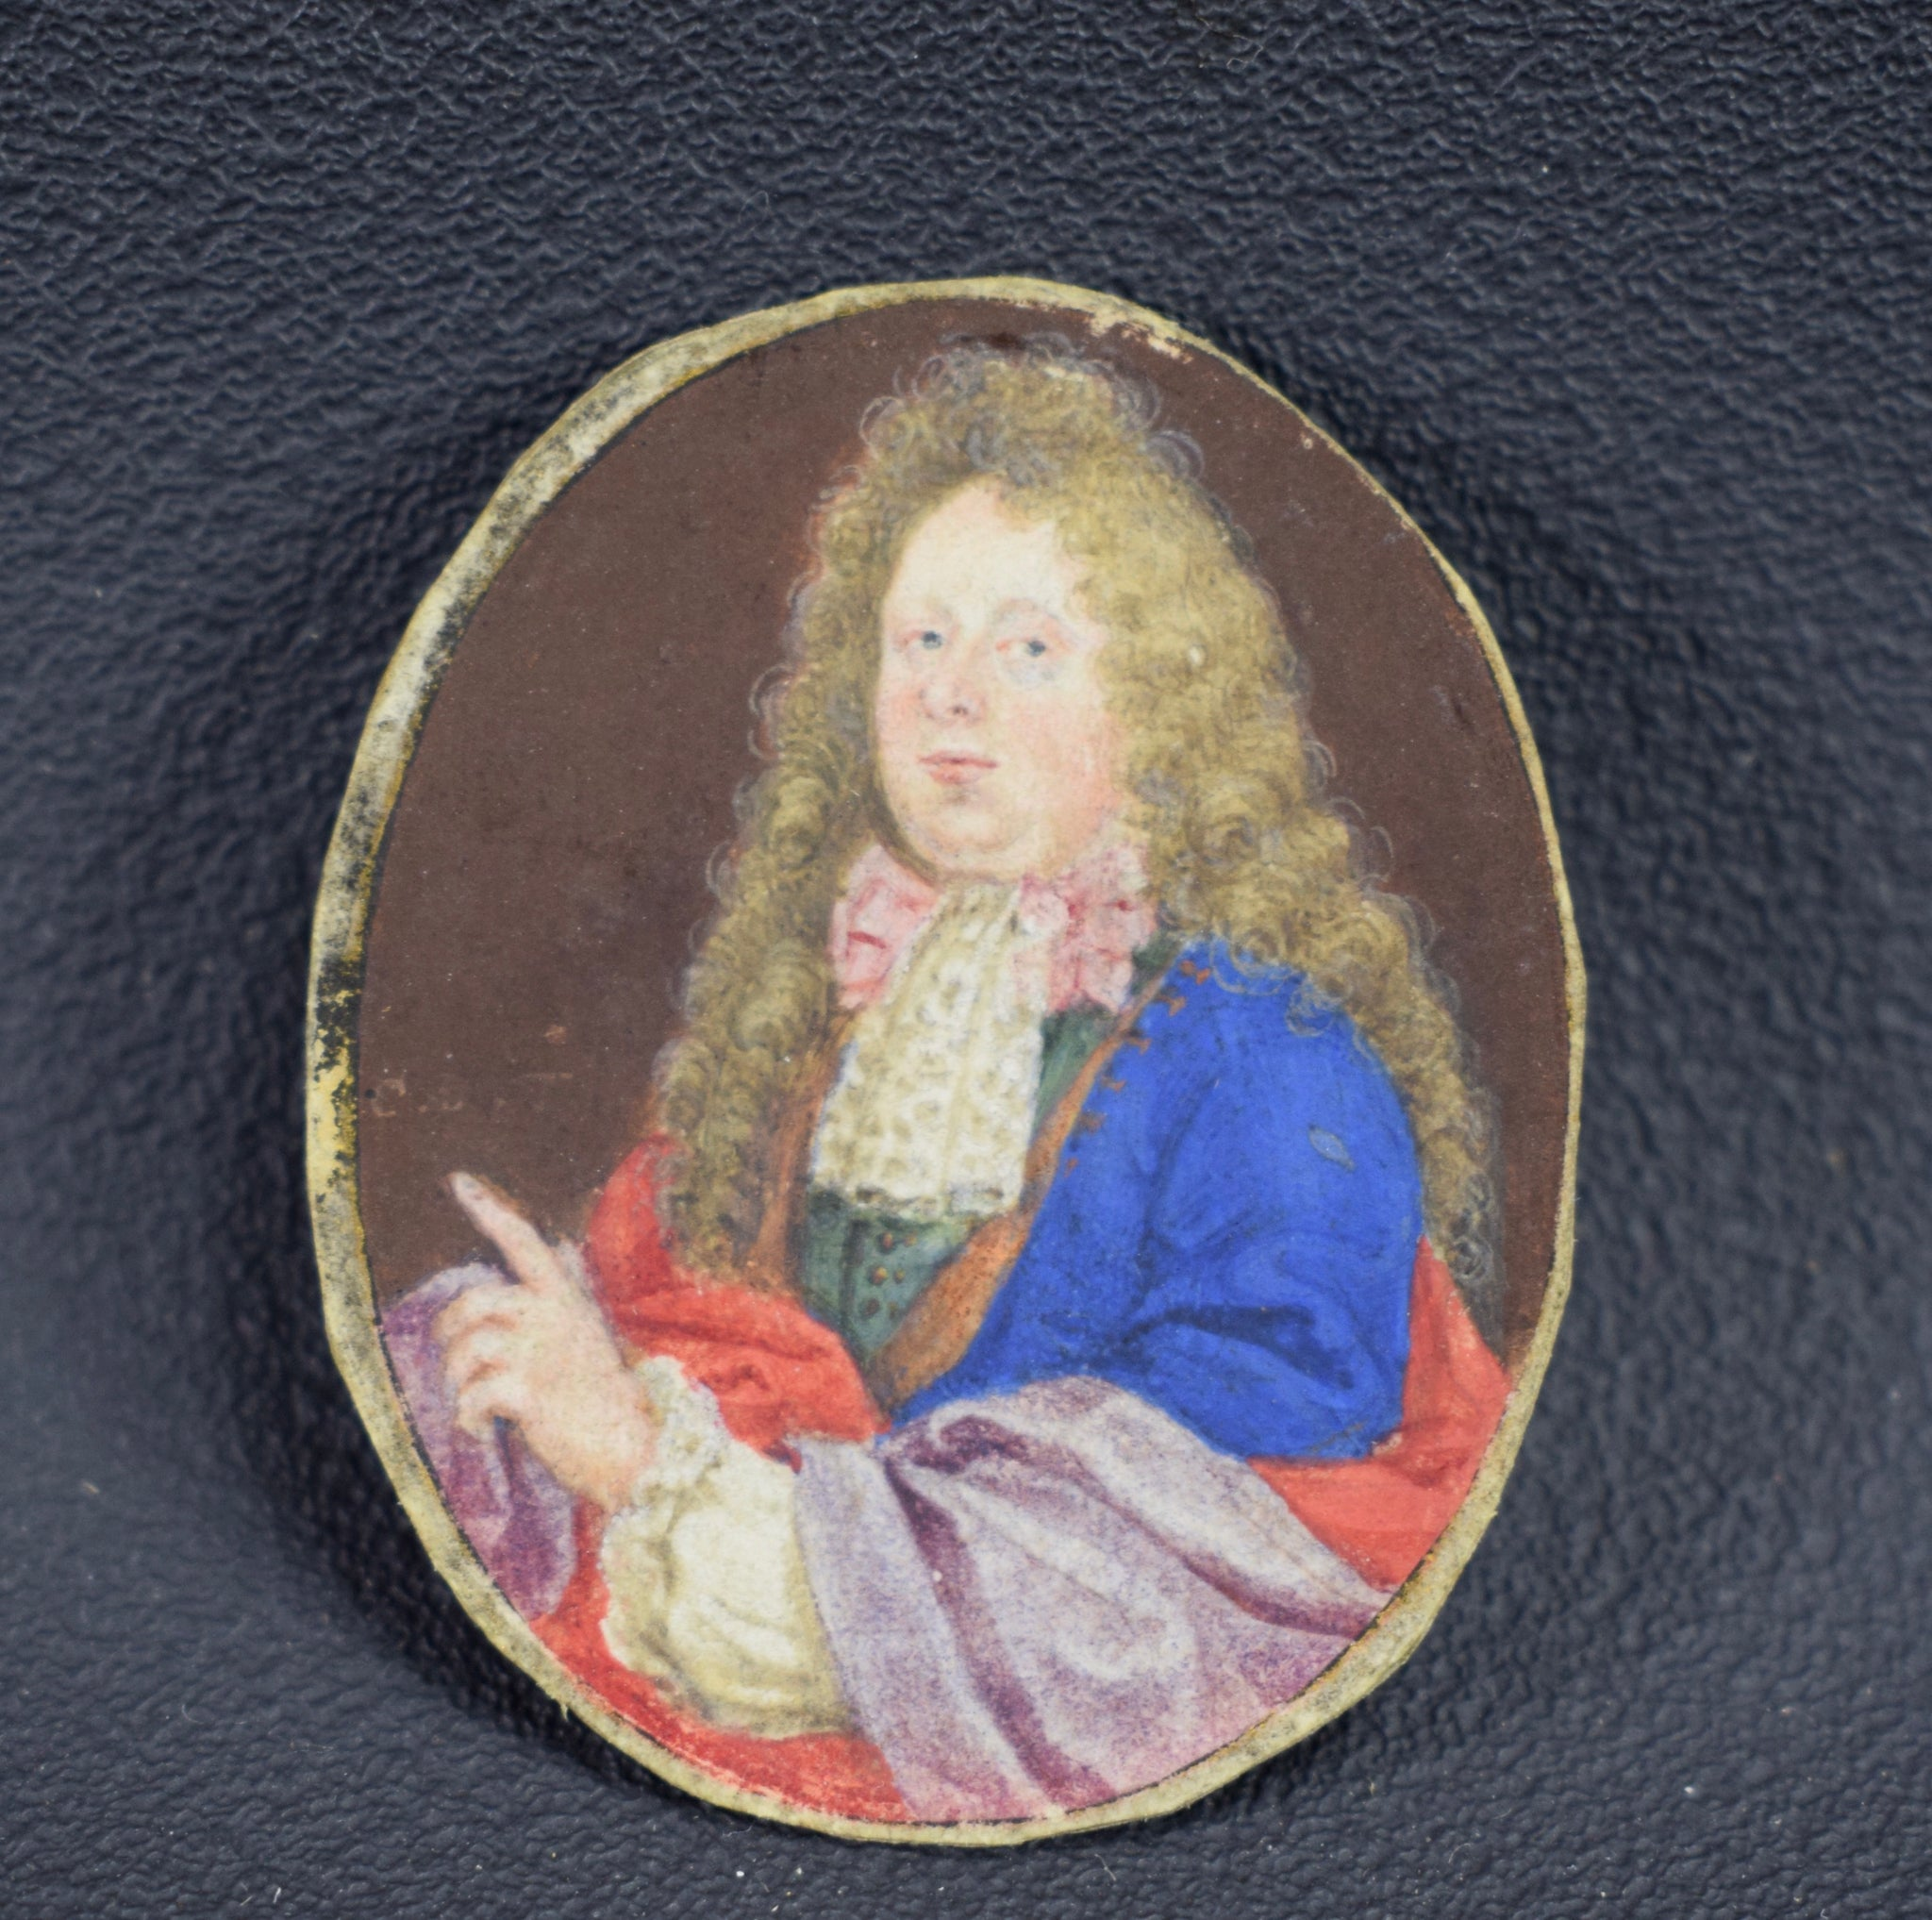 French Antique Miniature Painting on Paper Nobleman 18th 19th Century